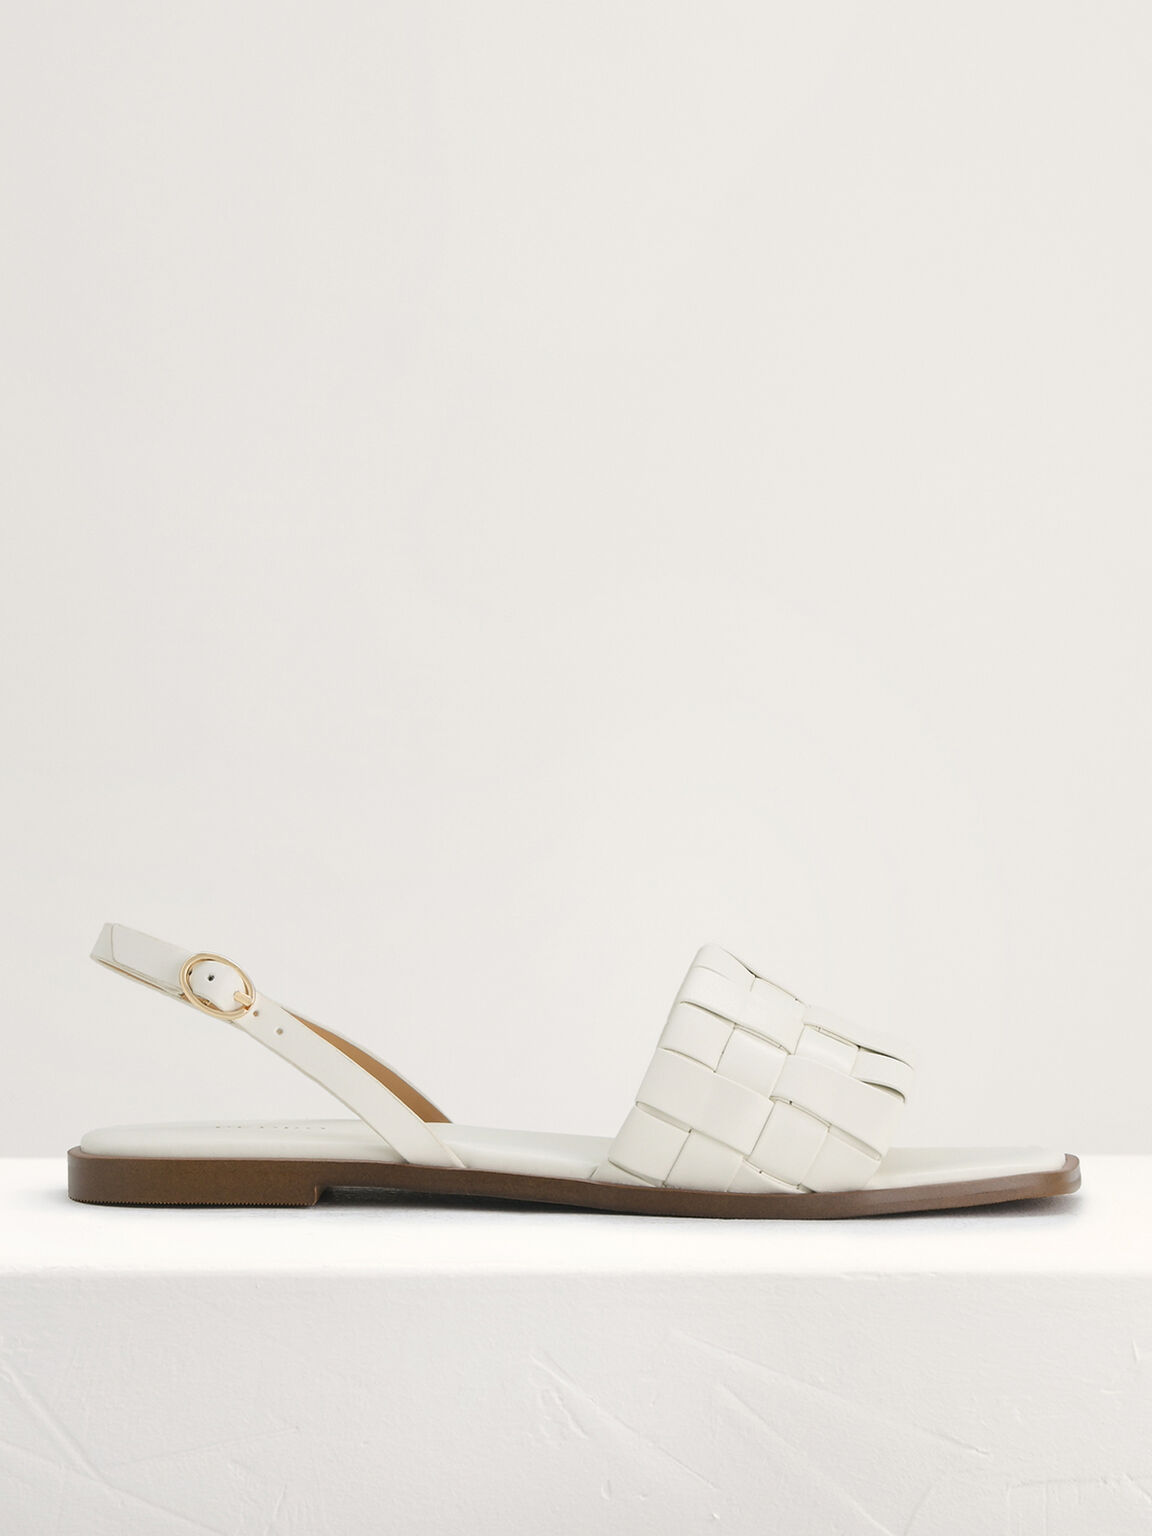 Braided Slingback Sandals, White, hi-res